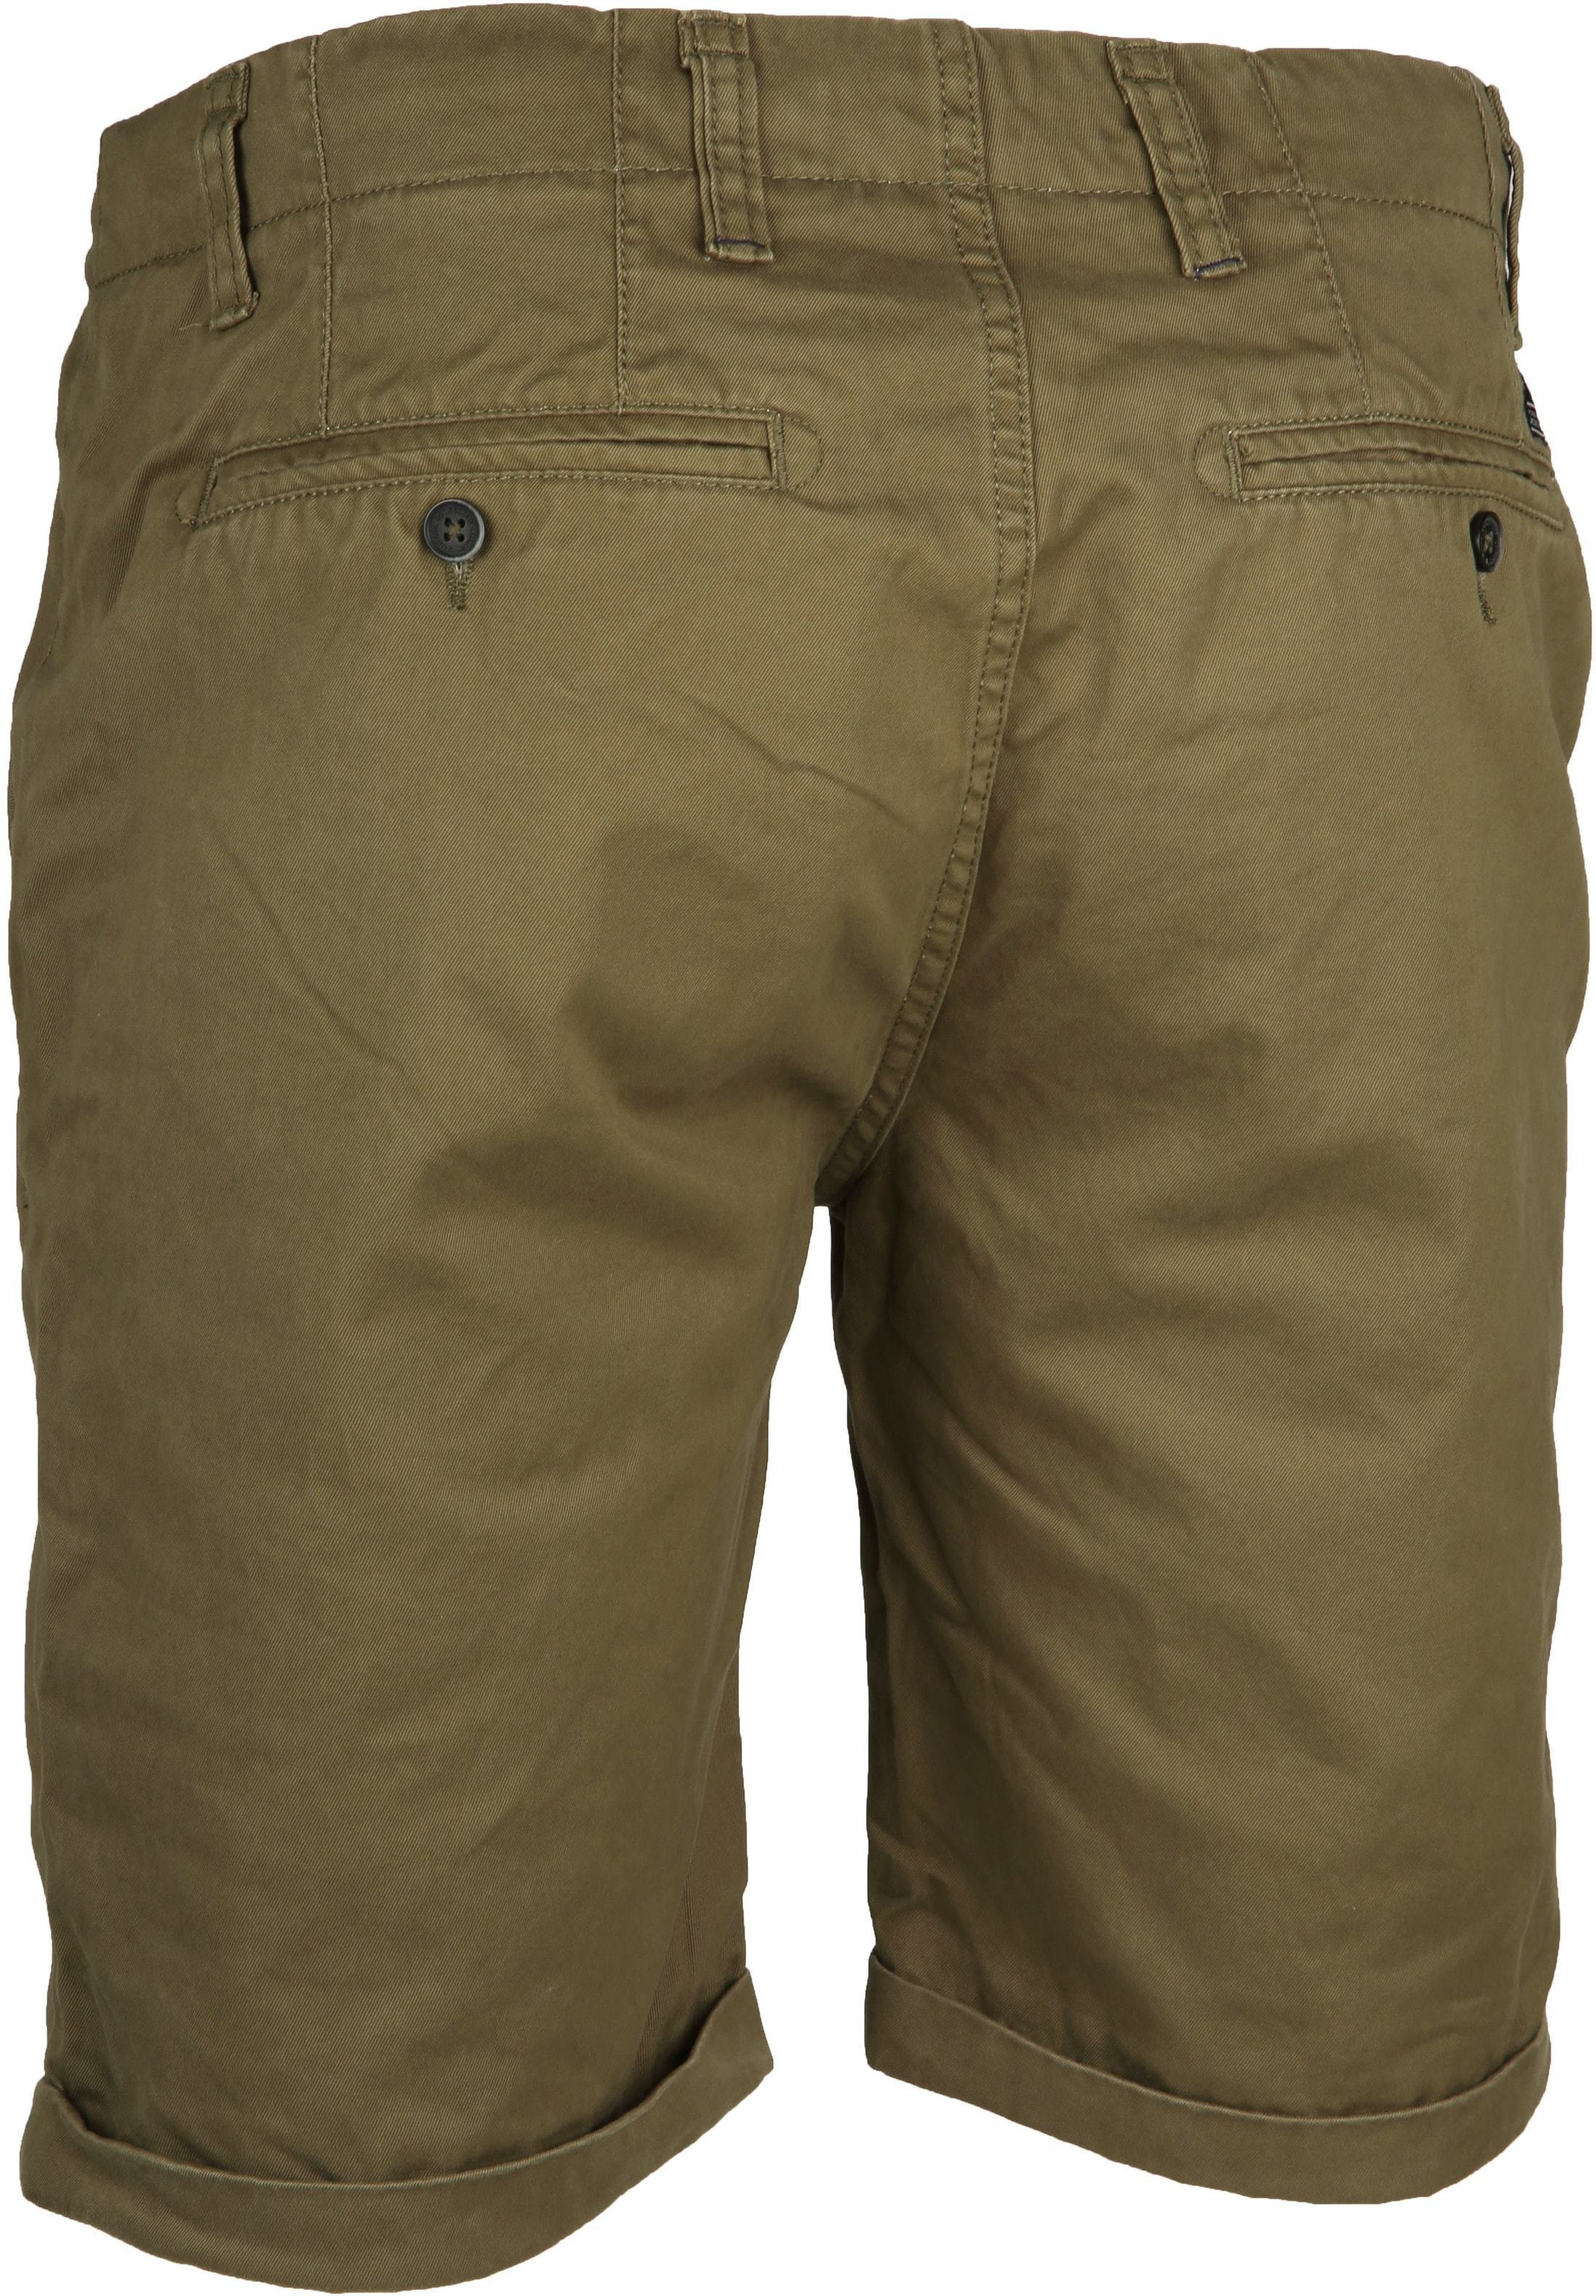 Dstrezzed Chino Short Dense Army foto 2